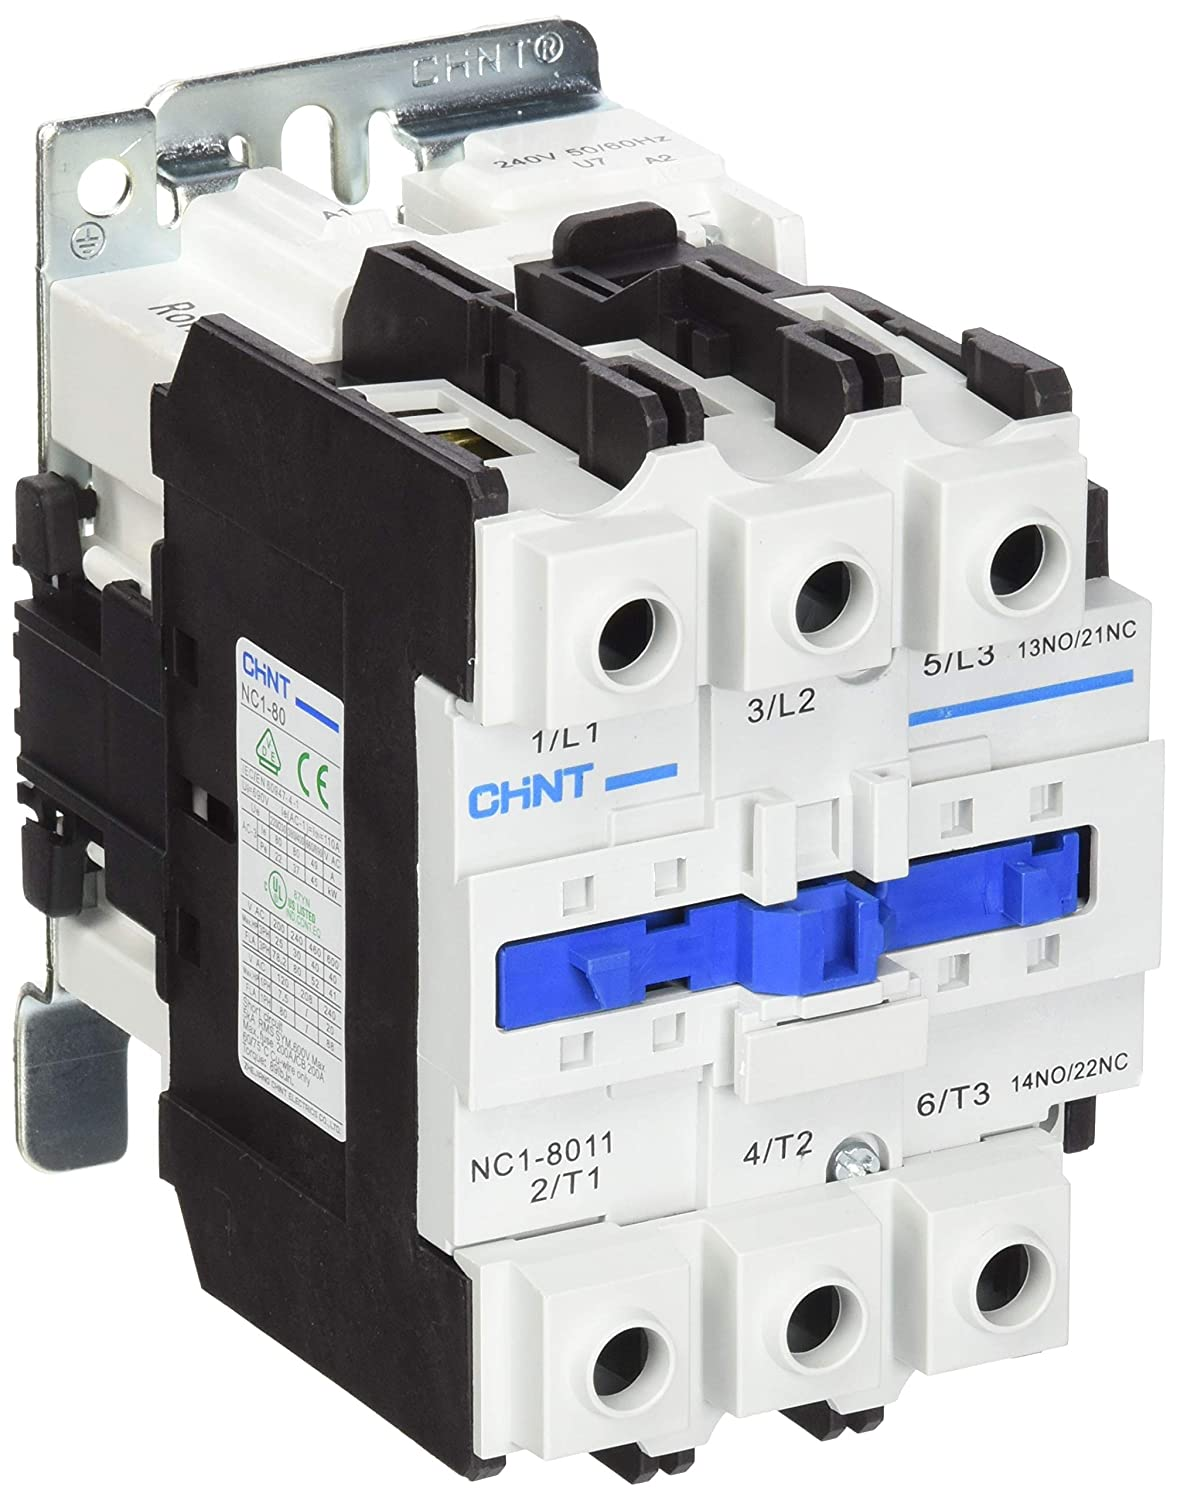 Chint NC1-8011-240V General Contactor, 240V, 80 A, AC3, 3 Main + 1 N/O and 1 N/C Aux Chint Europe (UK) Ltd